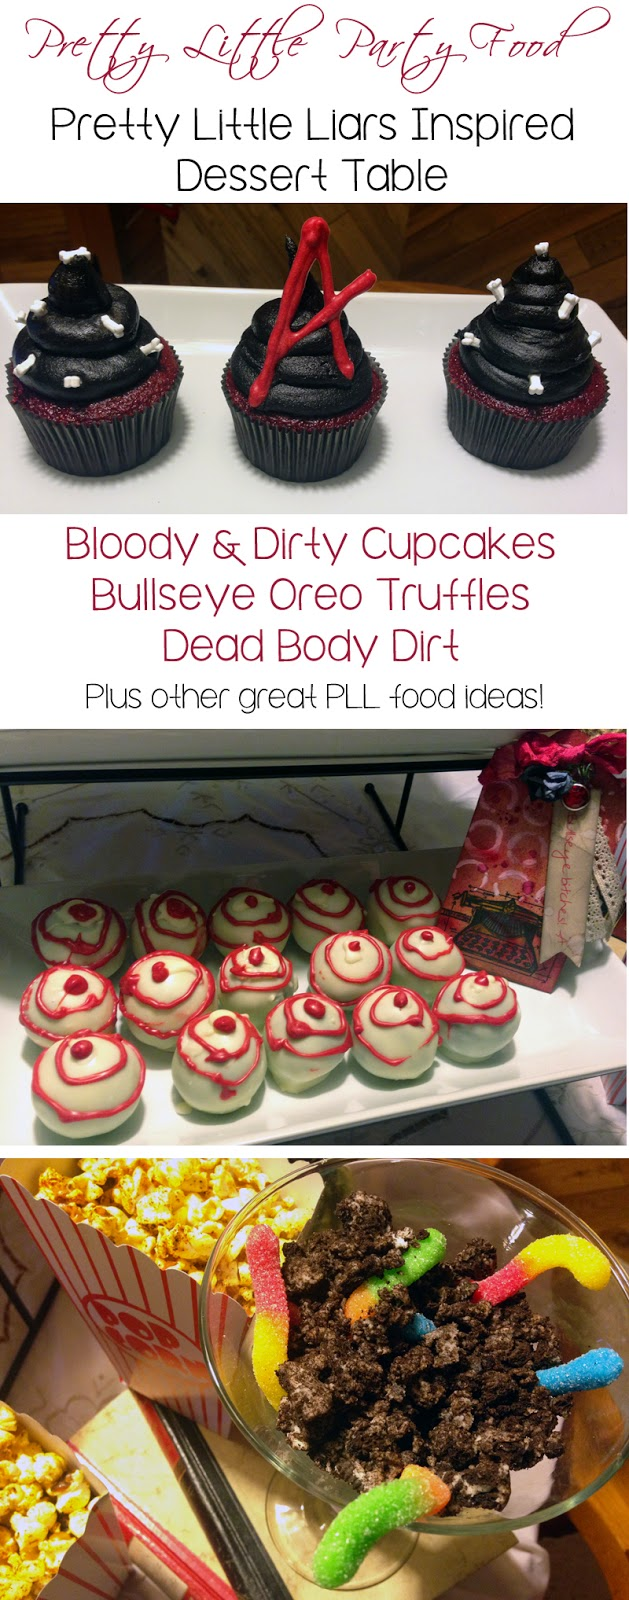 Pretty Little Liars, party, watch party, Big A Reveal, Who is A?, Charles is A, Oreo truffles, bullseye, killer popcorn, dirt and worms, A cupcakes, kisses, The Brew Ice Cream, bloody steaks, food, dessert table, snack table